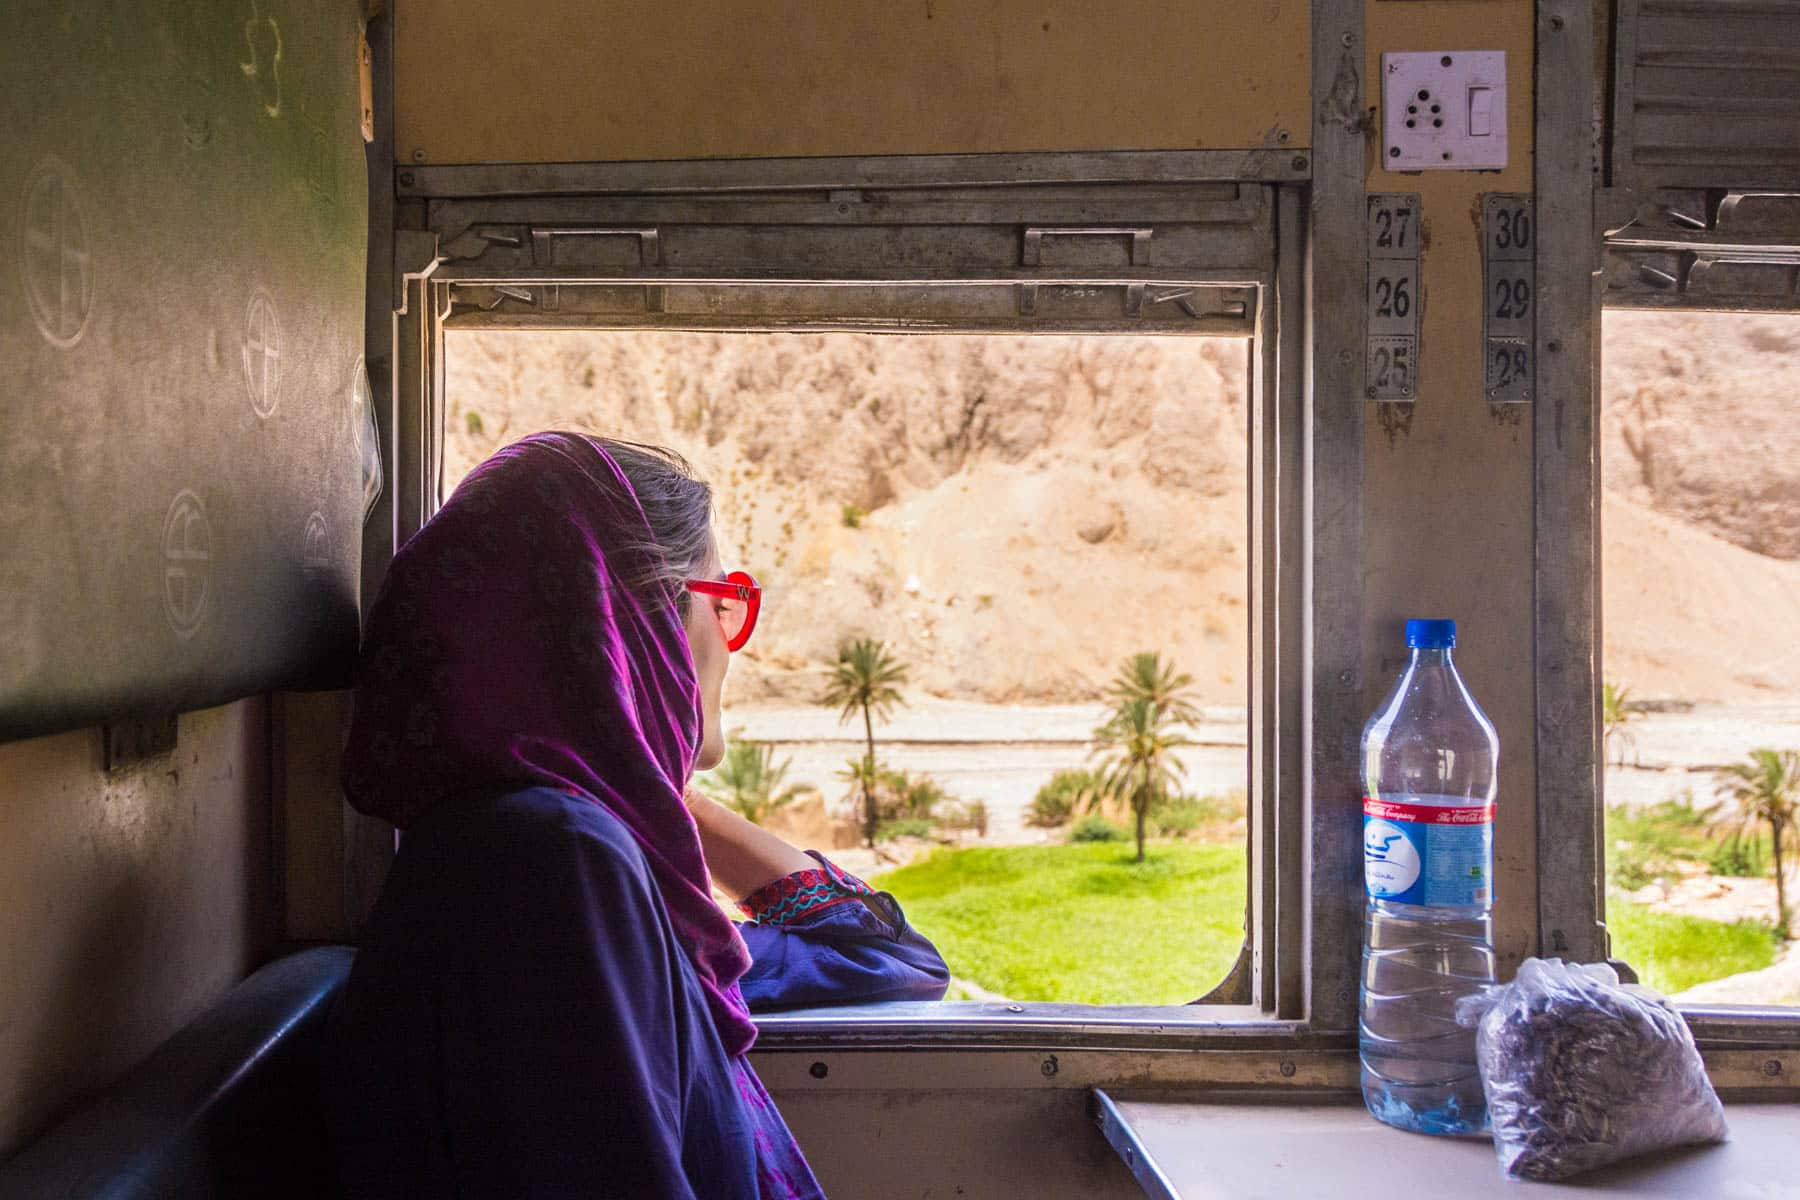 Reverse culture shock from long-term travel - Staring out the window on a train through Balochistan, Pakistan - Lost With Purpose travel blog